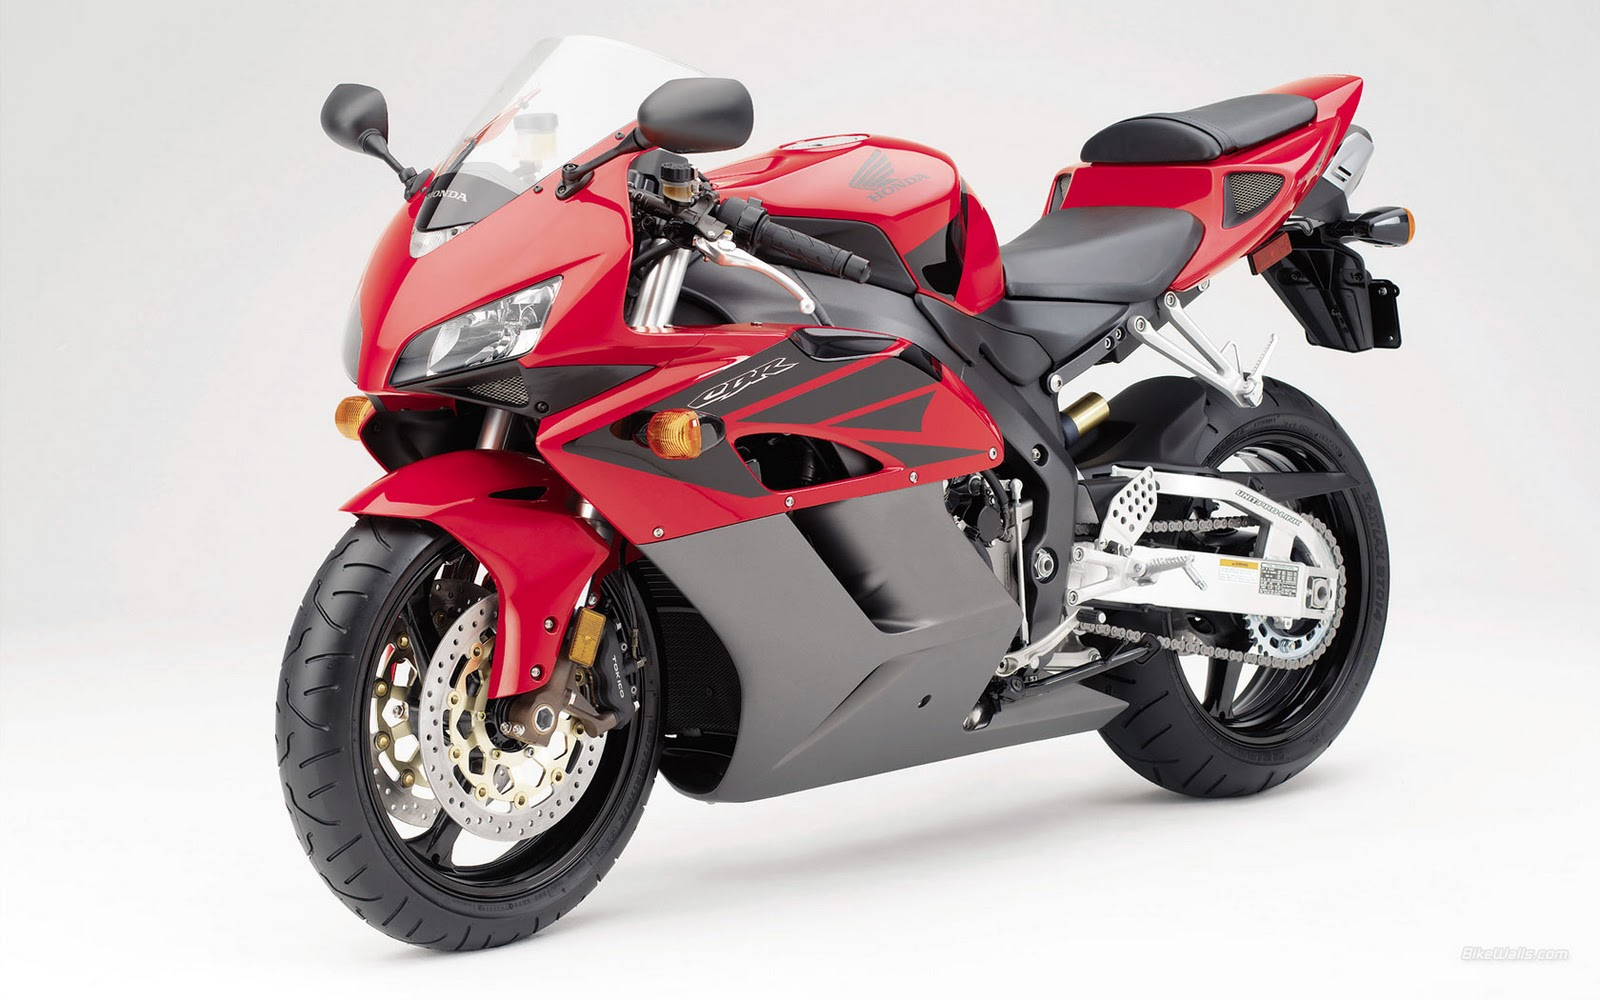 Honda CBR 100 RR 2004 Bike Wallpapers